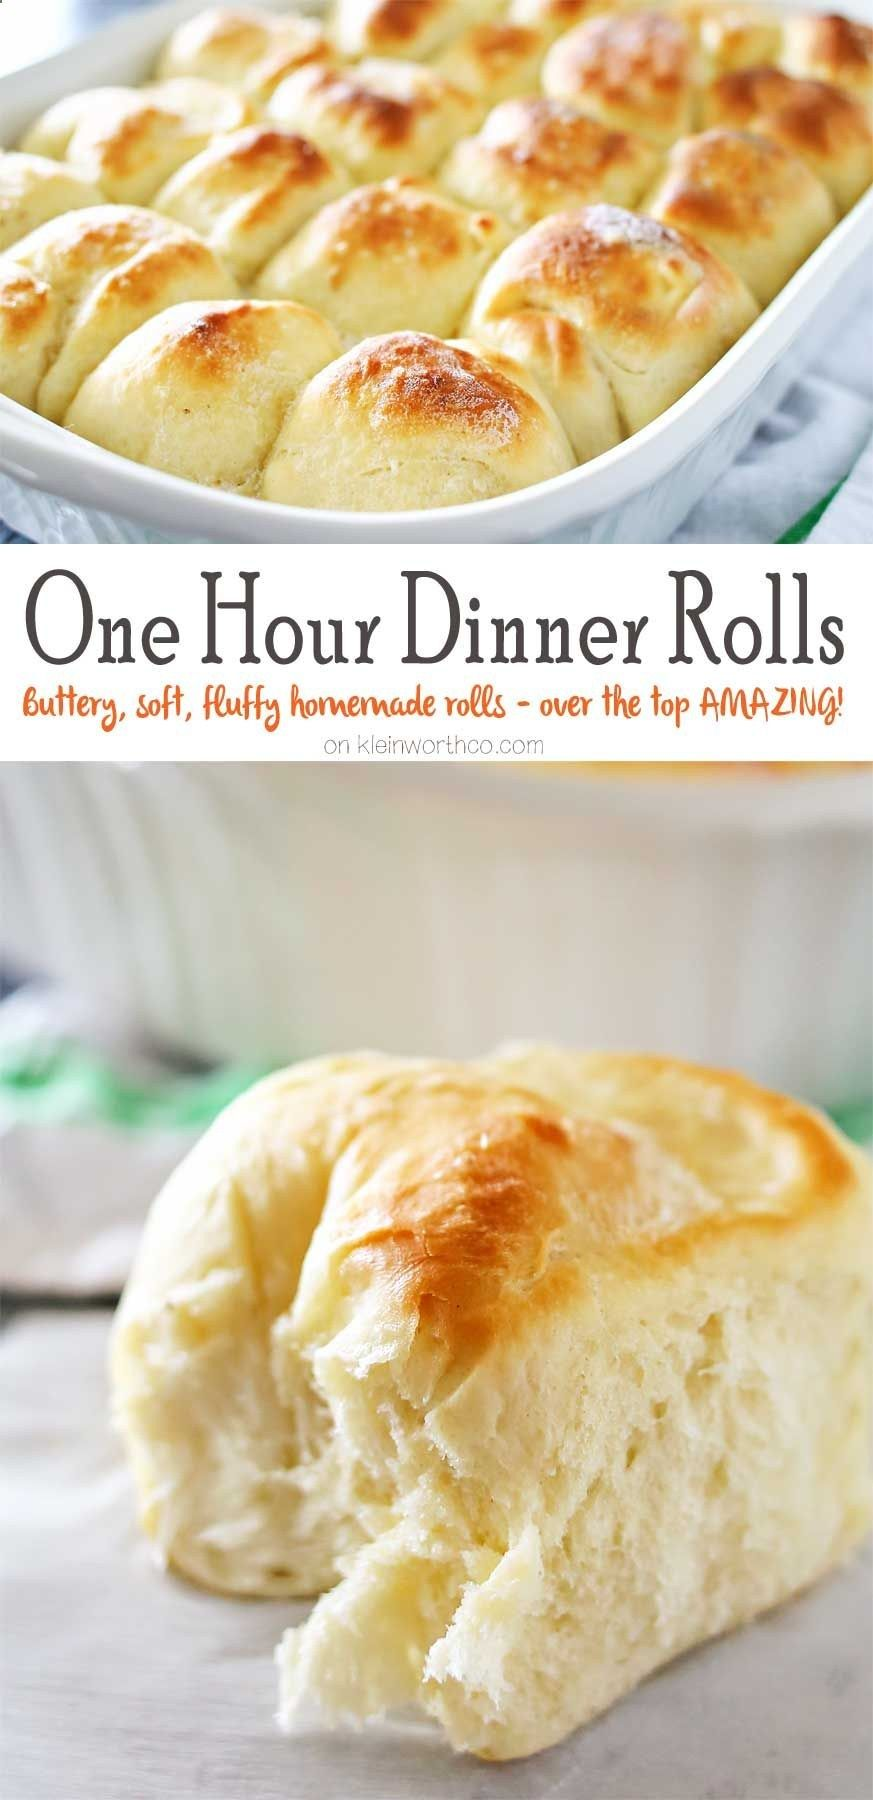 One hour dinner rolls are made with this easy yeast rolls recipe